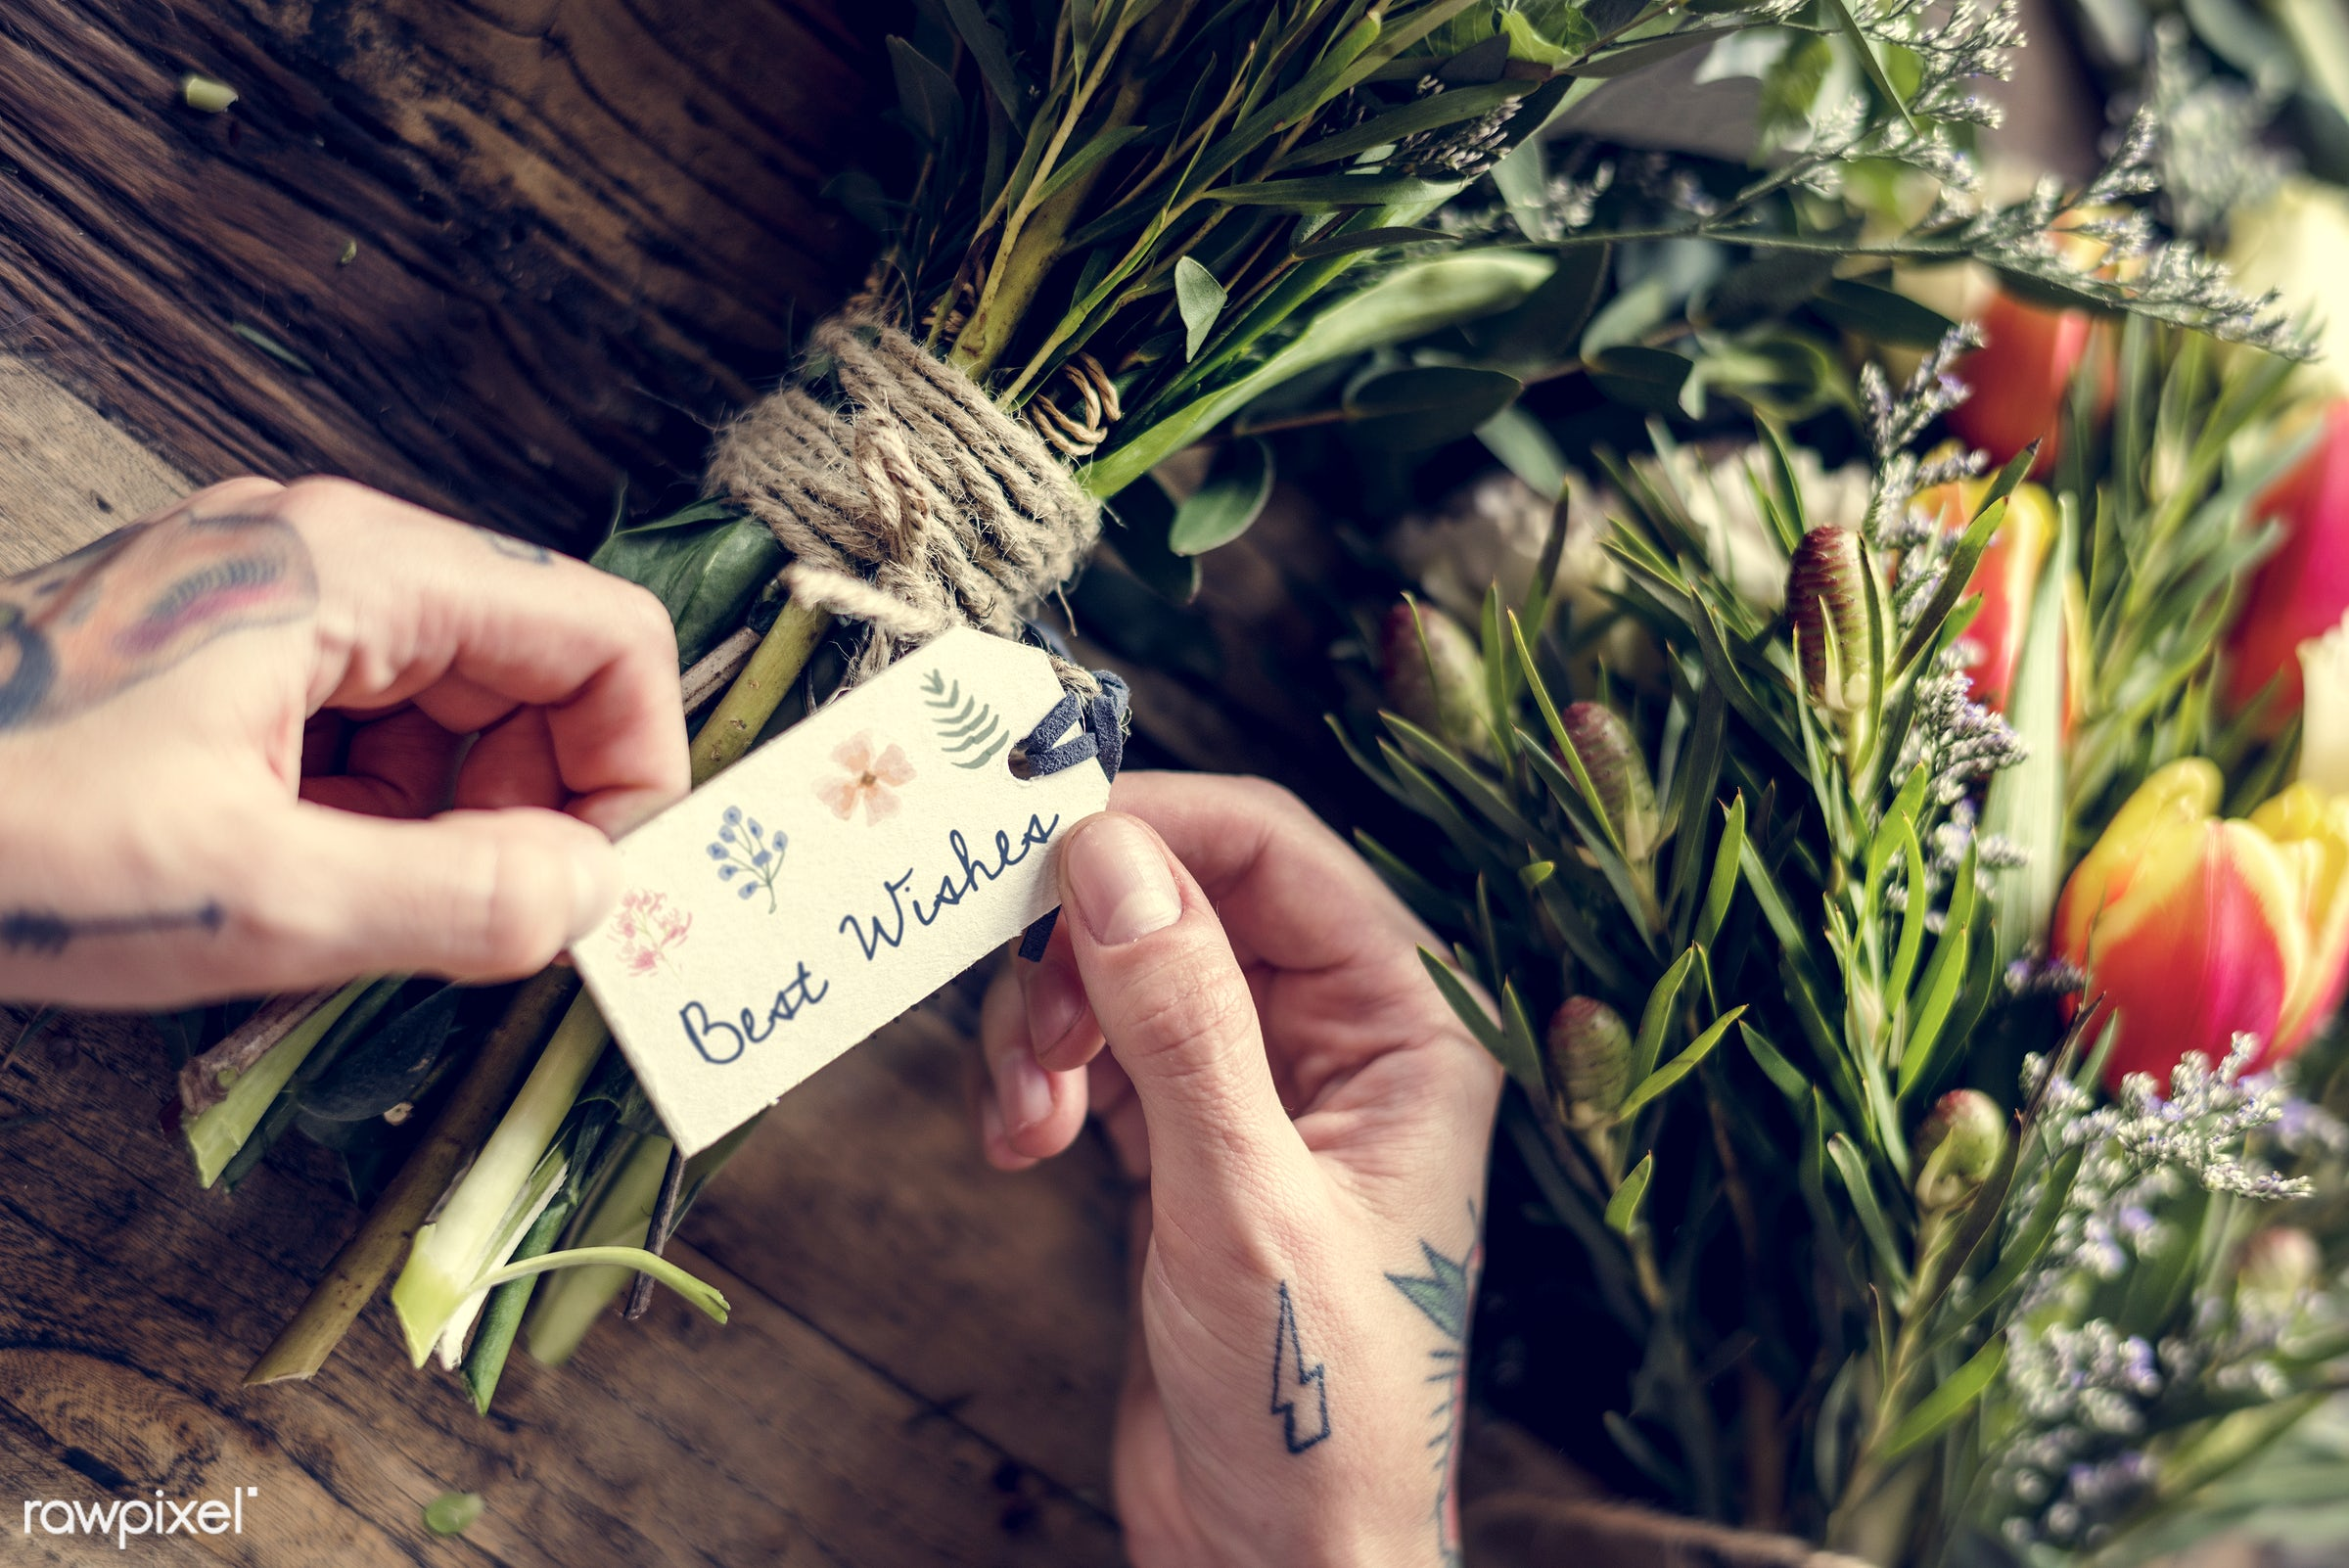 bouquet, shop, detail, person, wish, tag, people, decor, nature, woman, tattoo, flowers, work, refreshment, florist, present...